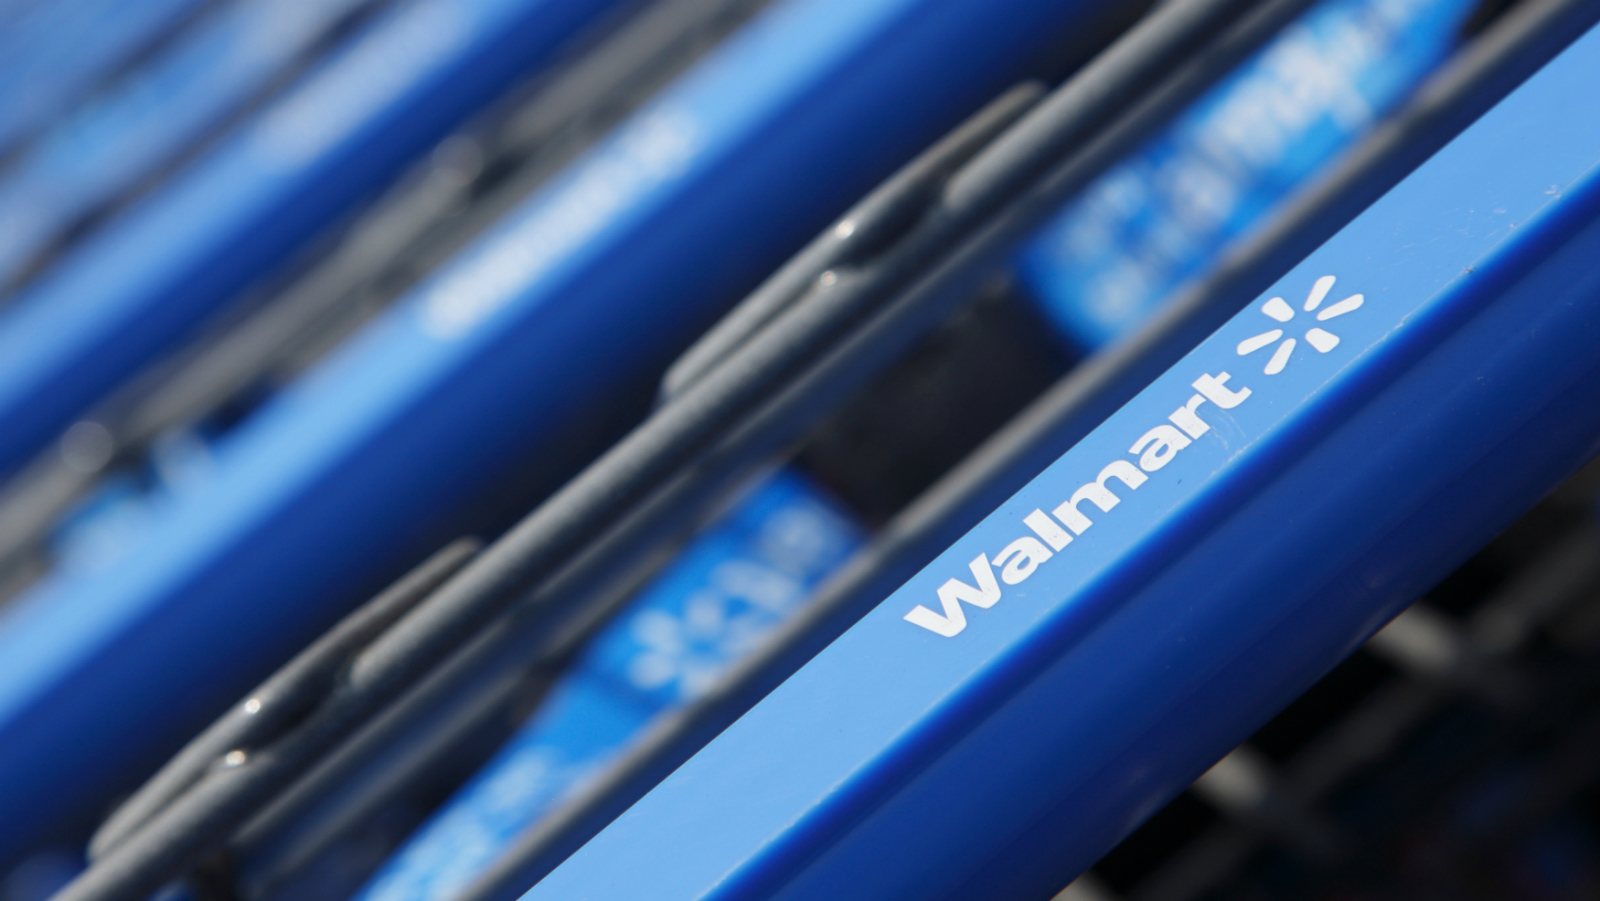 Shopping carts are seen outside a new Walmart Express store in Chicago July 26, 2011. Wal-Mart Stores Inc is opening its first small store in Chicago on Wednesday as it tests a format it hopes will allow it to penetrate urban markets that have resisted its huge stores.